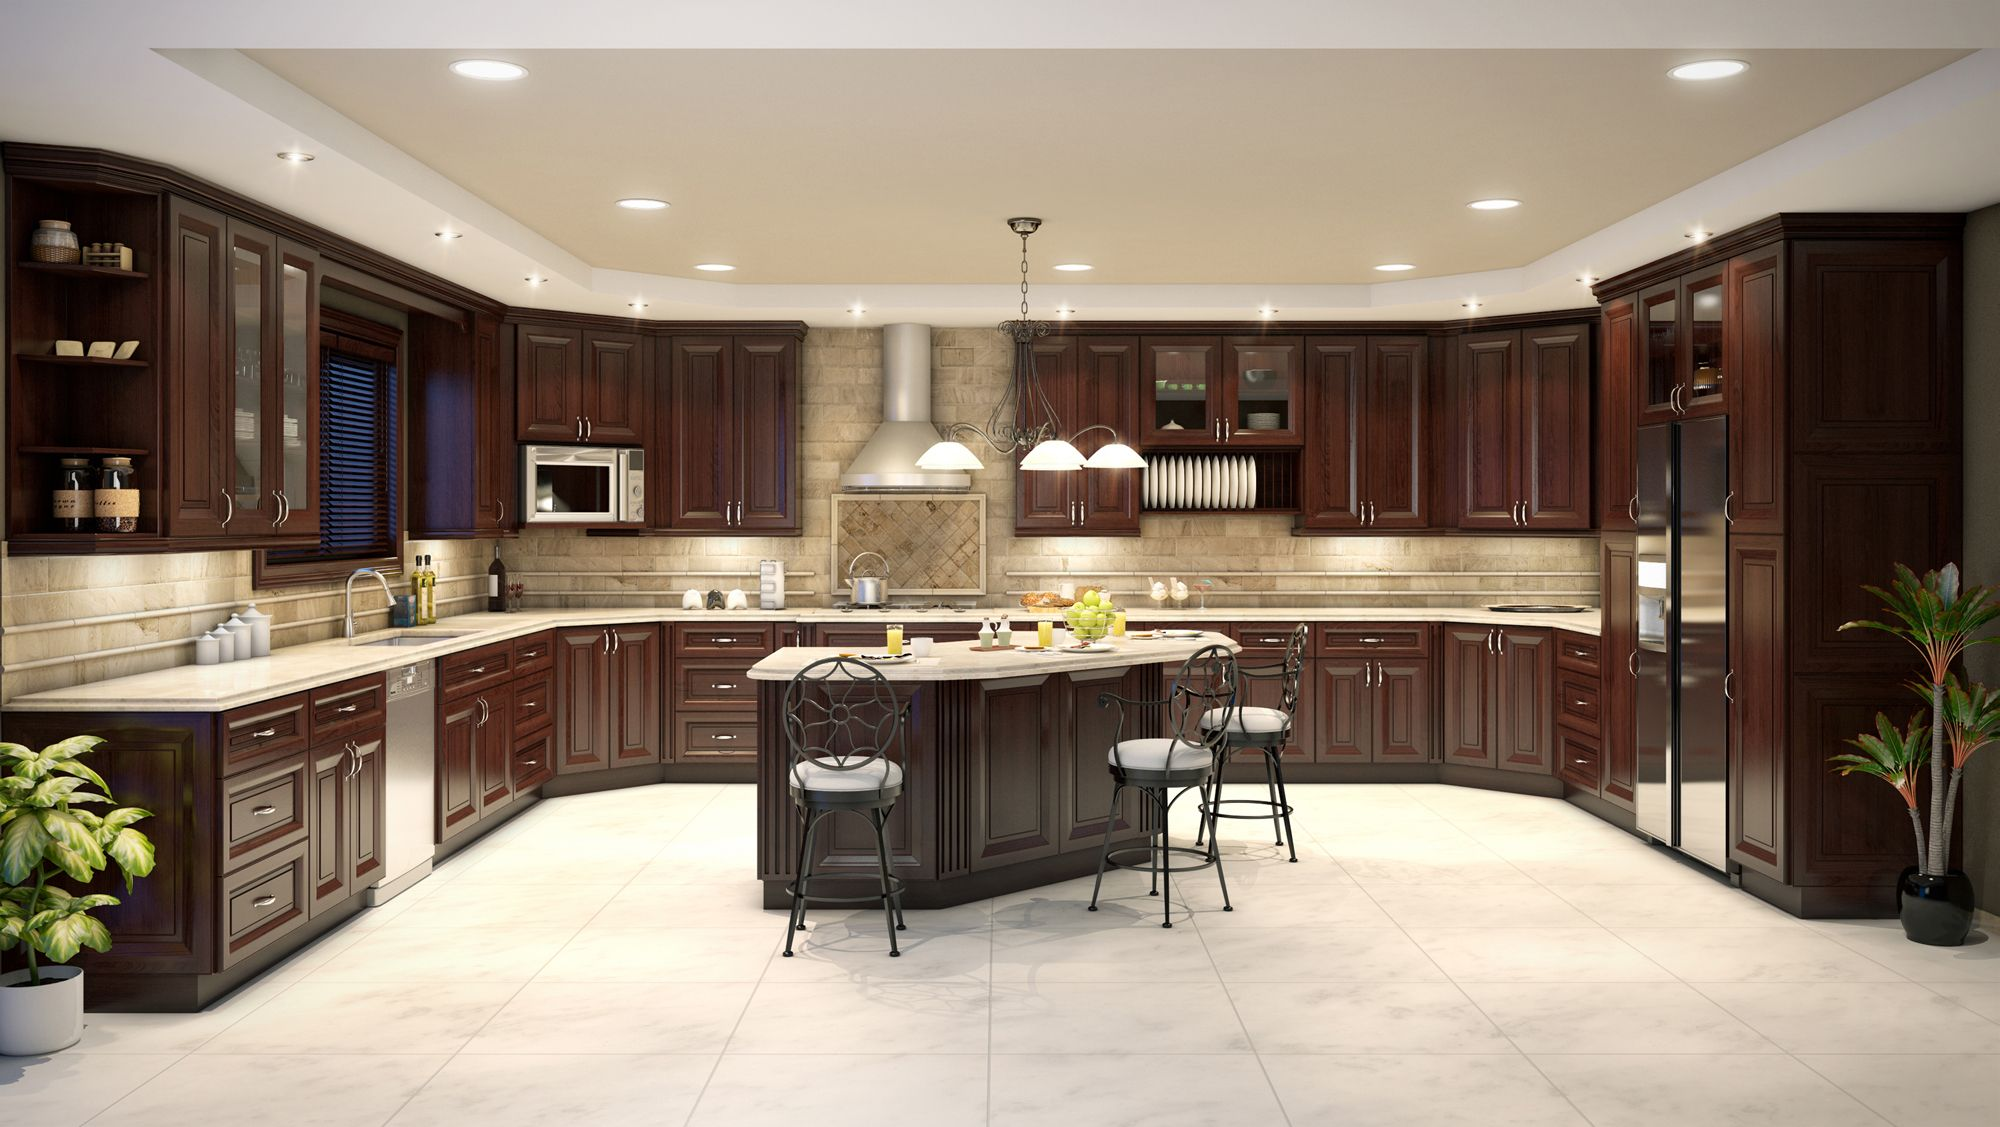 Zeta Kitchens Miami South Florida Kitchen Remodel Kitchen